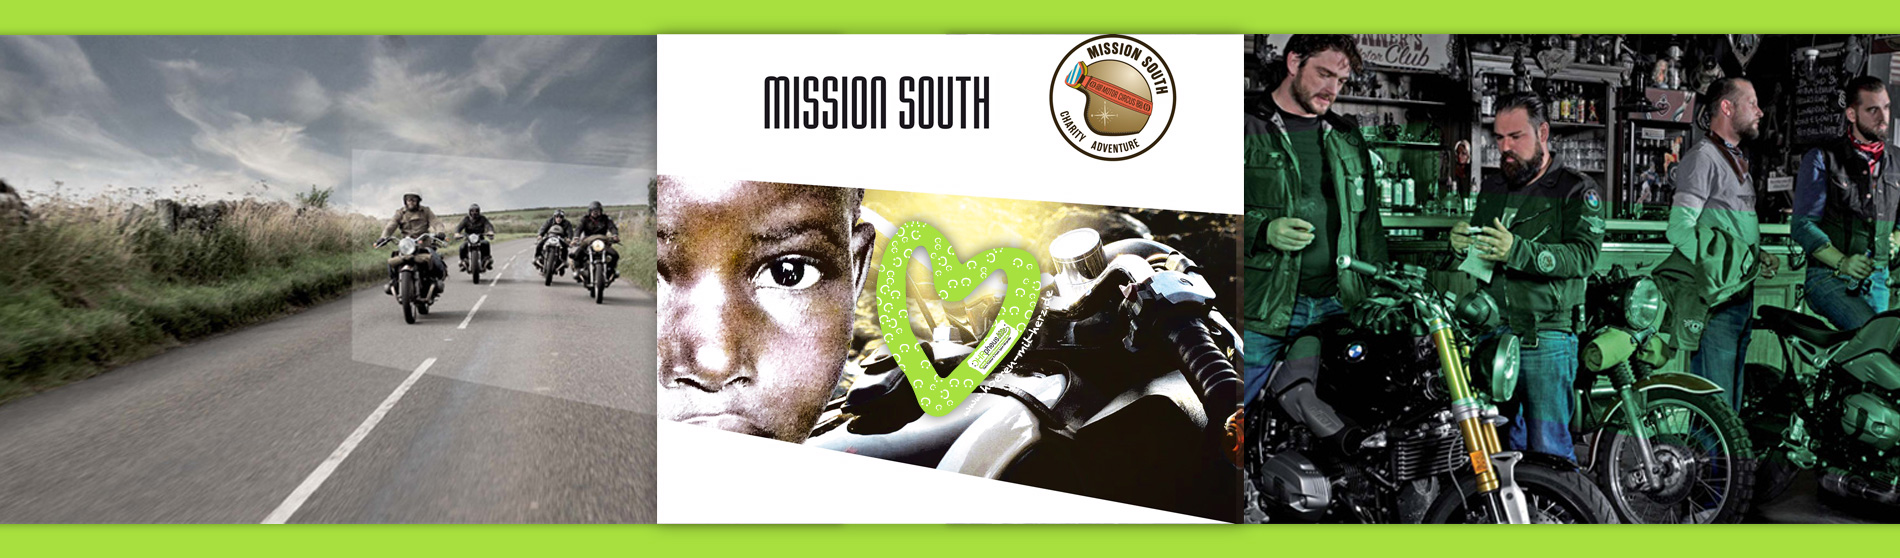 MissionSouth Sliderbild